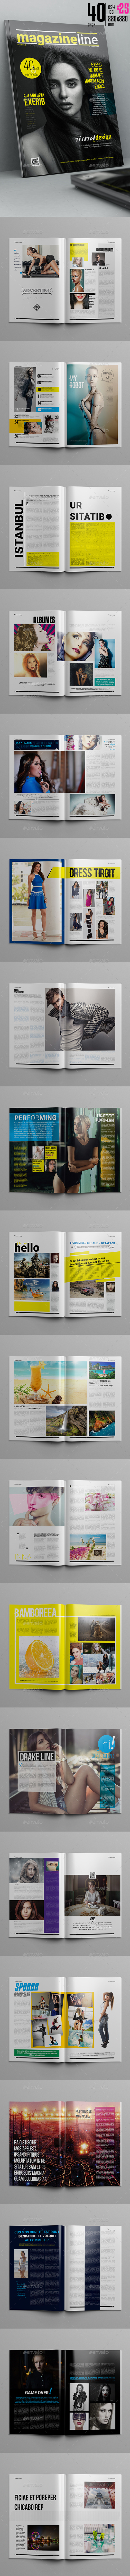 Magazine Line Template 40 Page - Magazines Print Templates